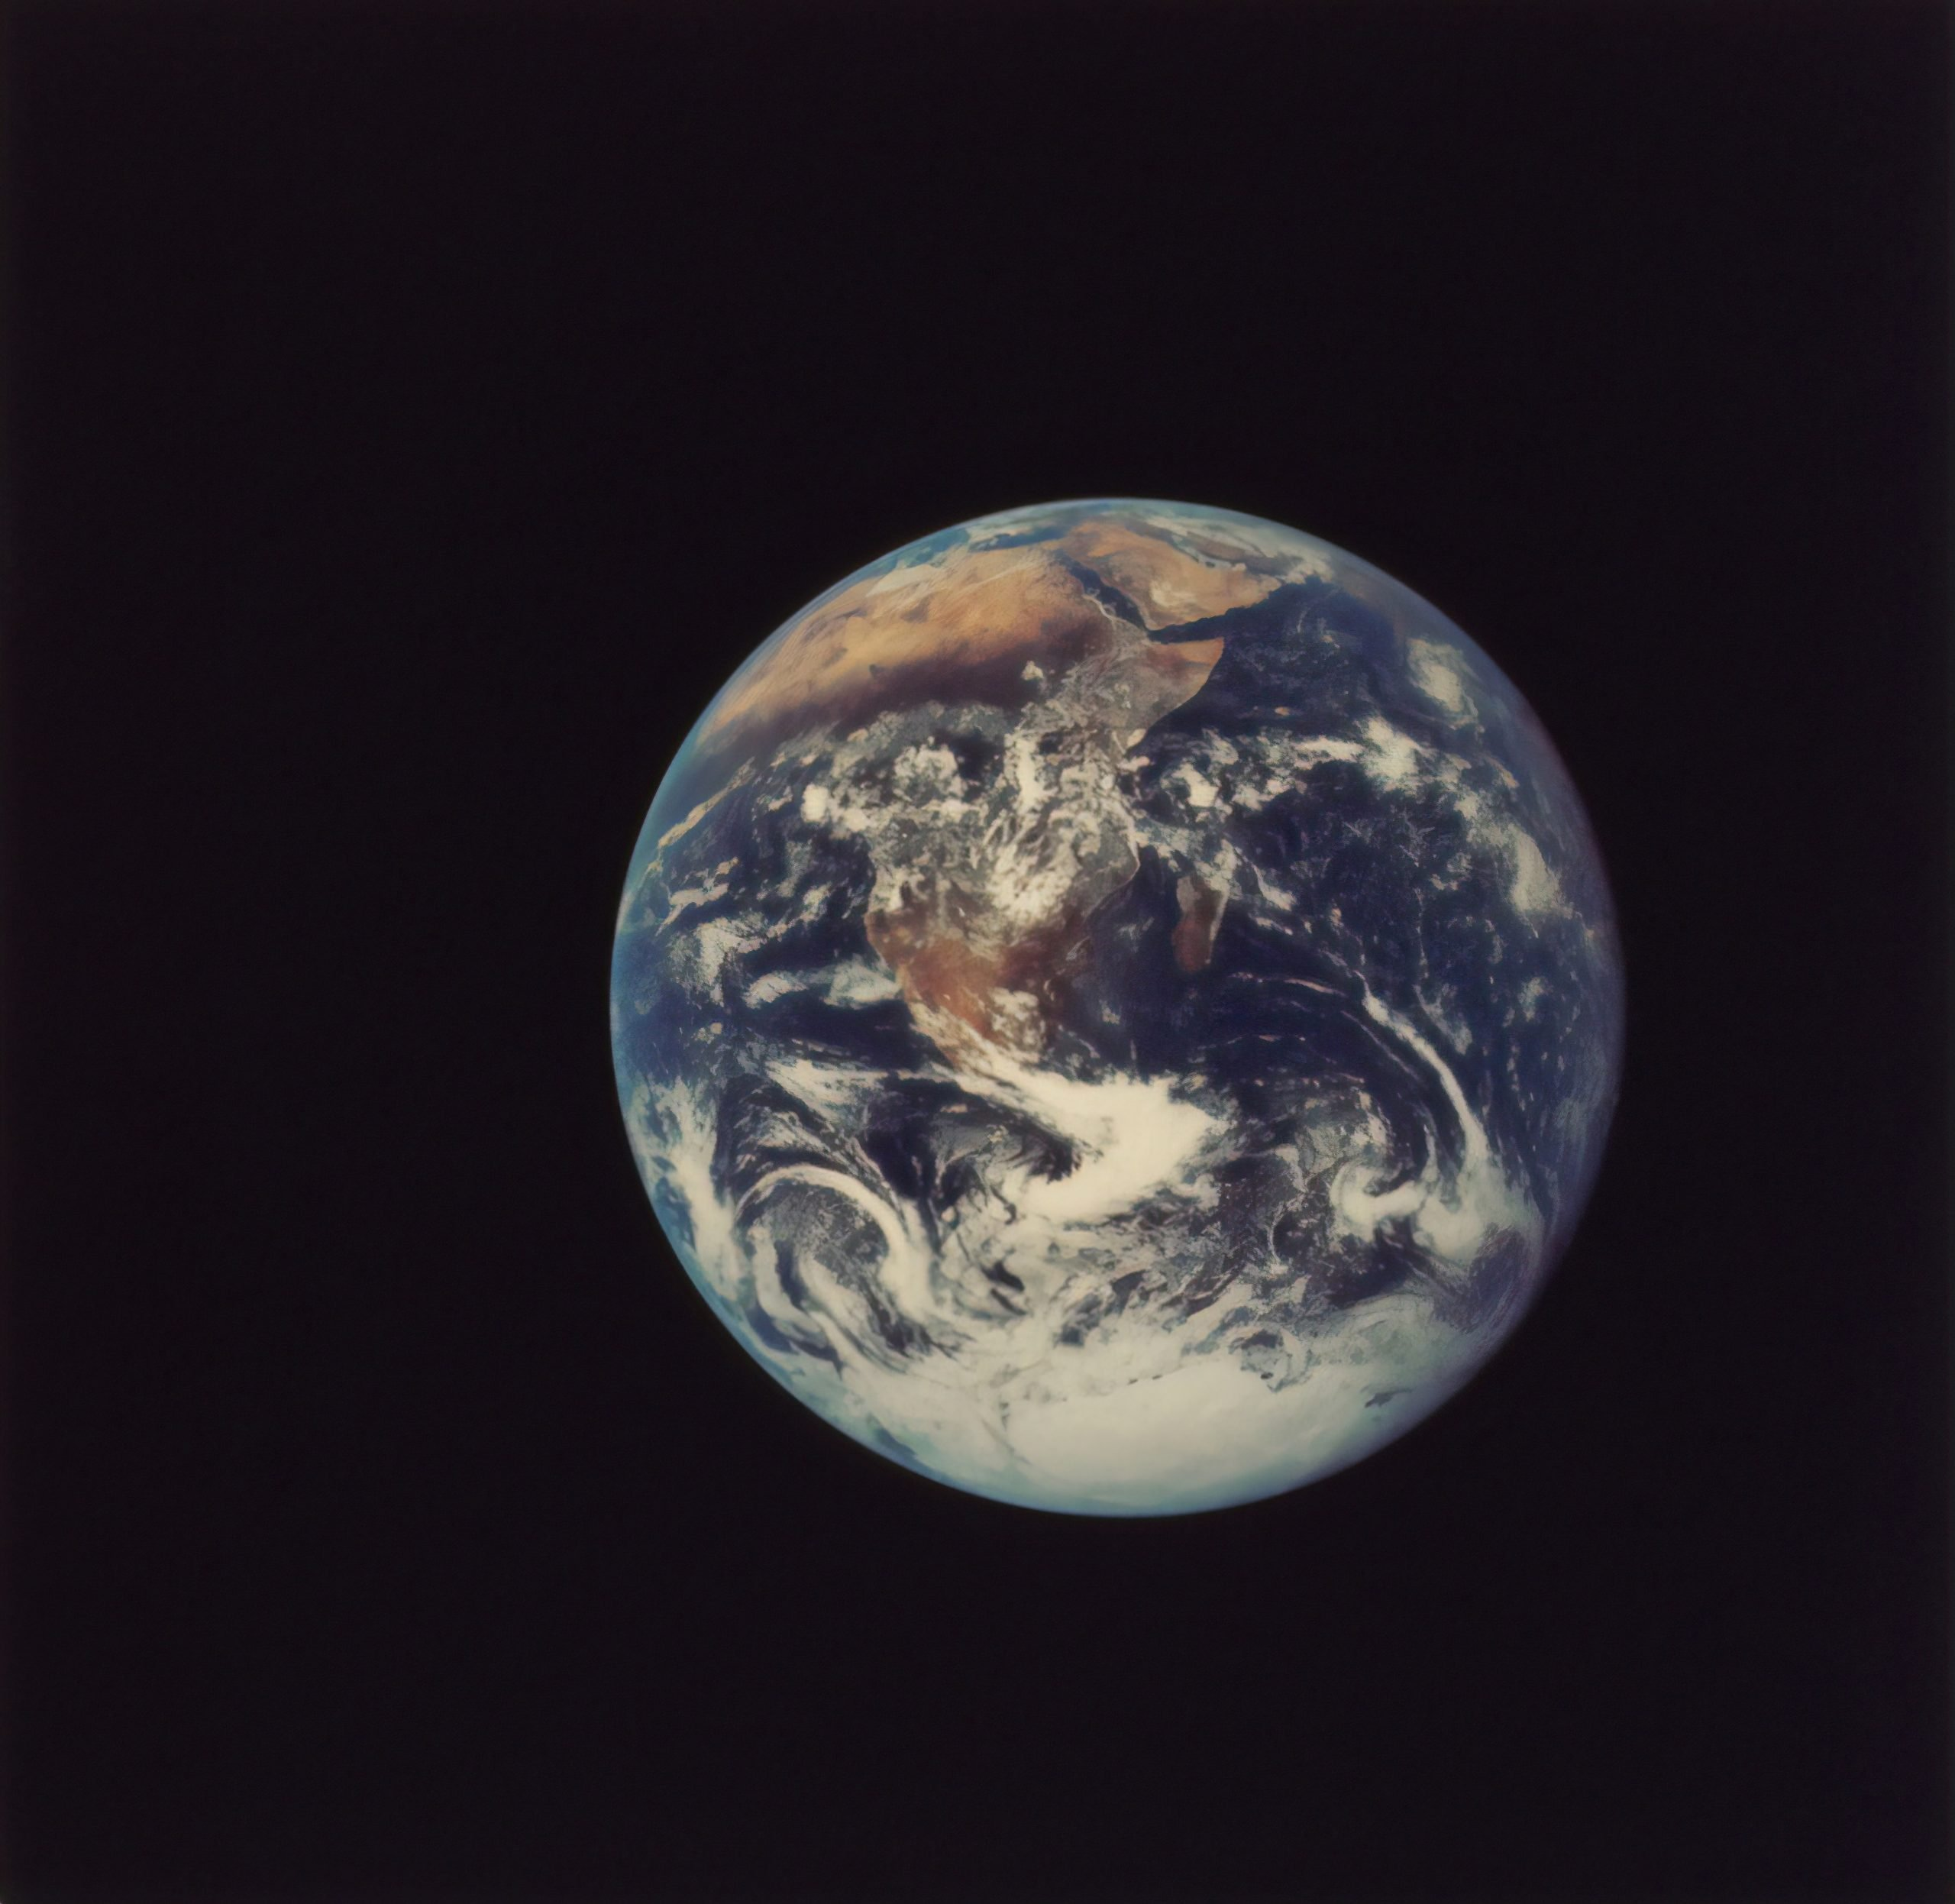 Earth Overshoot Day: How can we move the date?